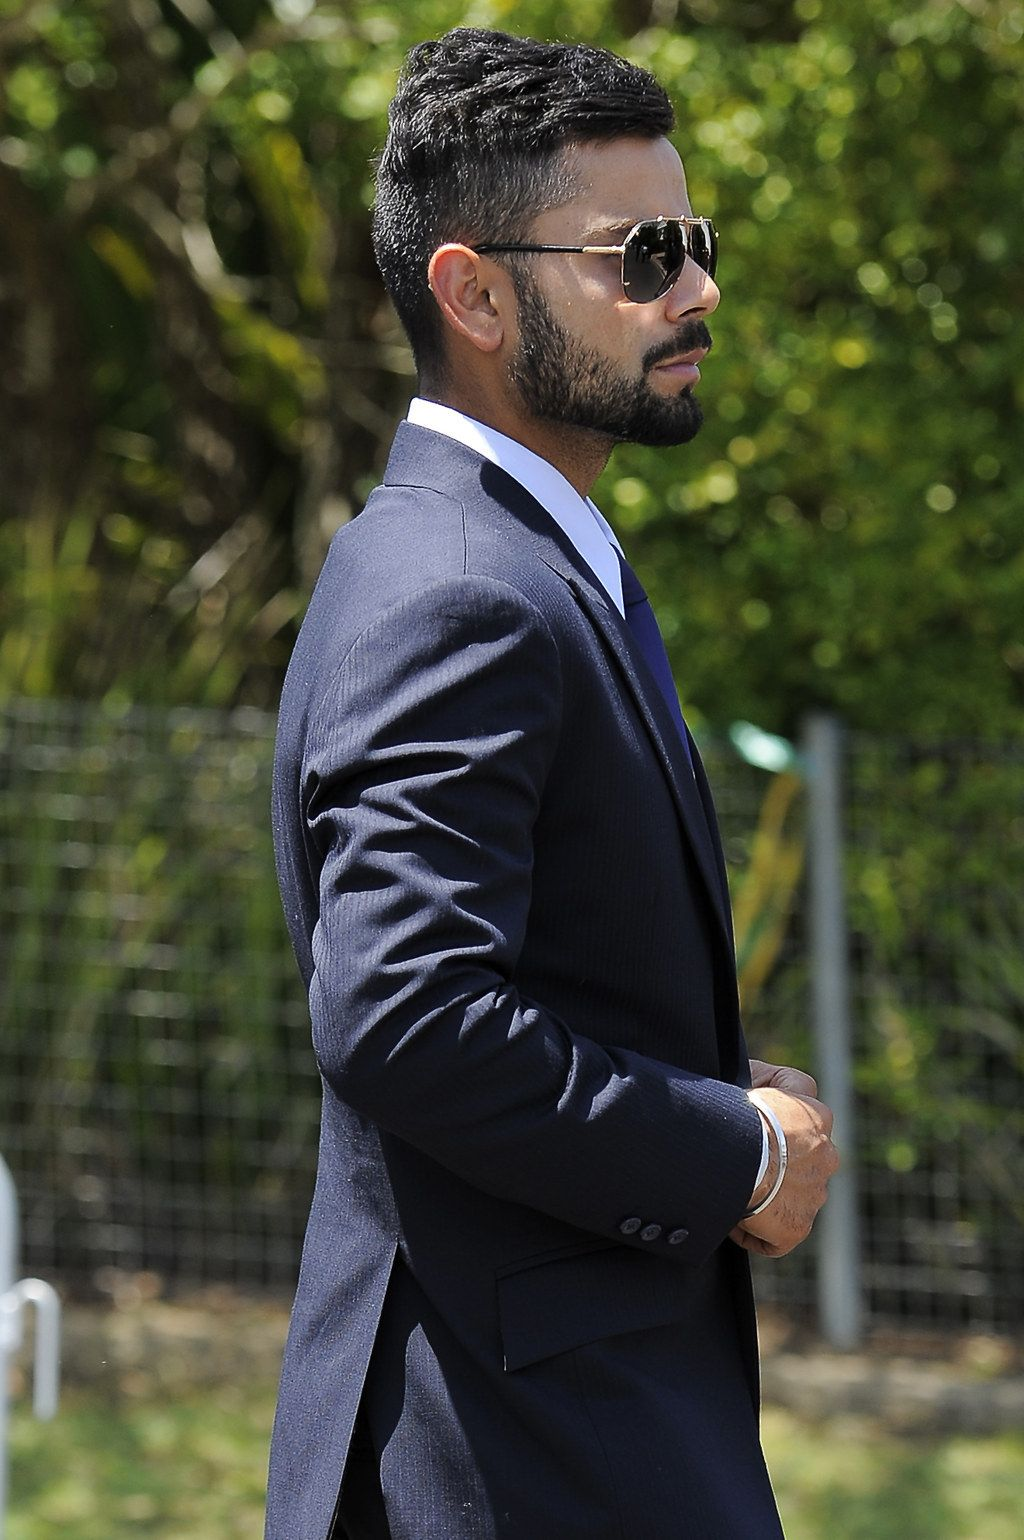 Virat hairstyle boy  convenient excuses to stare at the unbelievably sexy virat kohli